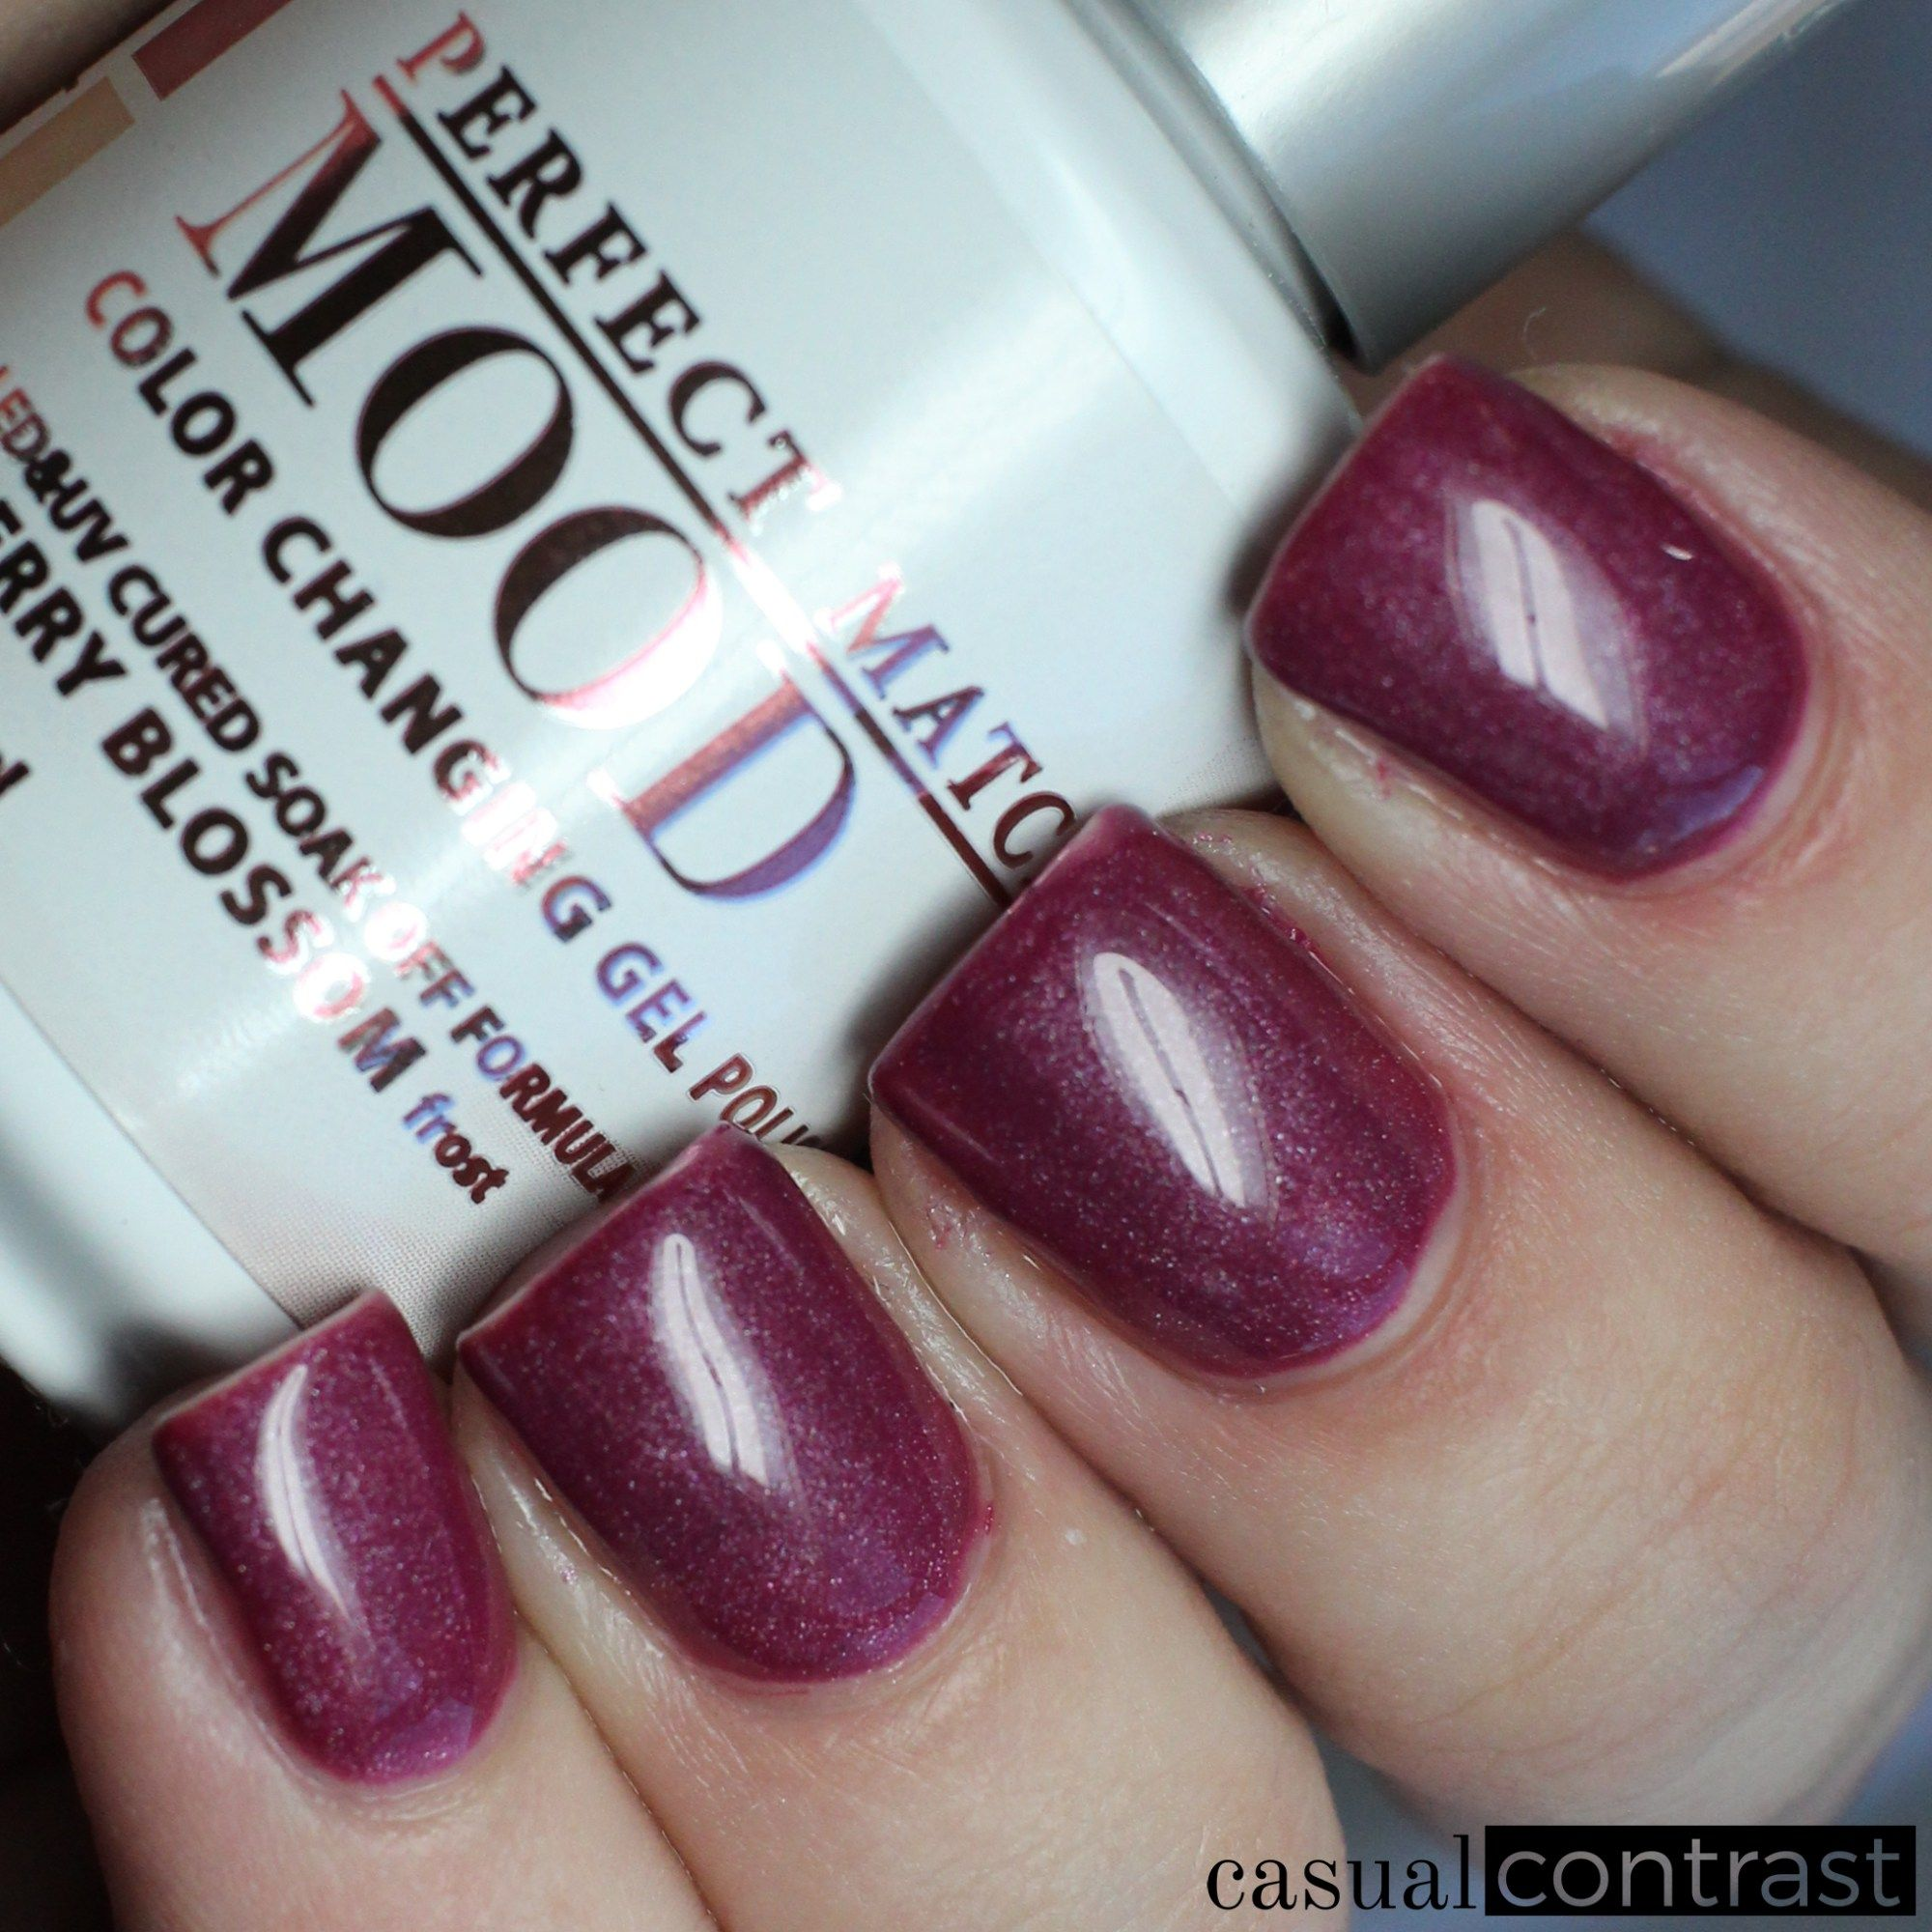 Lechat Cherry Blossom Cold State Perfect Match Mood Color Changing Gel Polish Swatches Review Casual Contrast